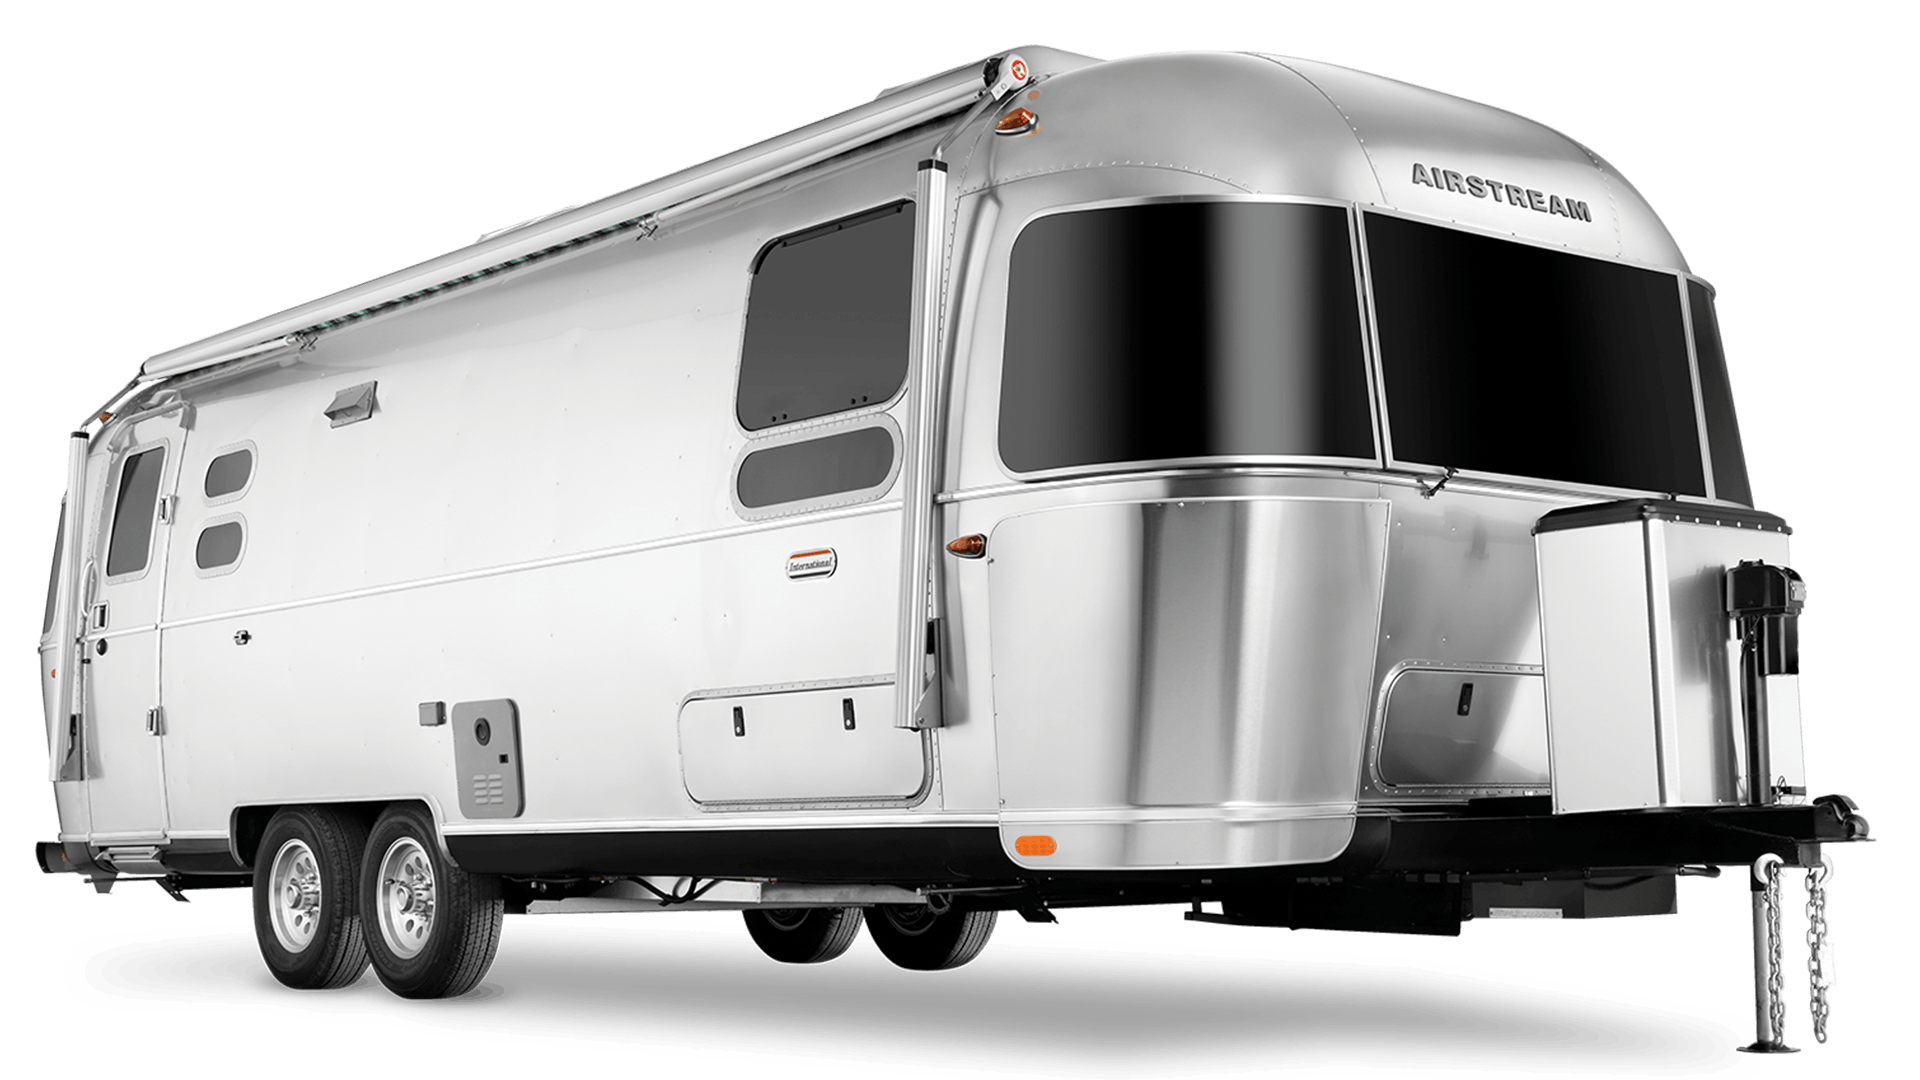 2021-Airstream-International-Travel-Trailer-Bug-Feature